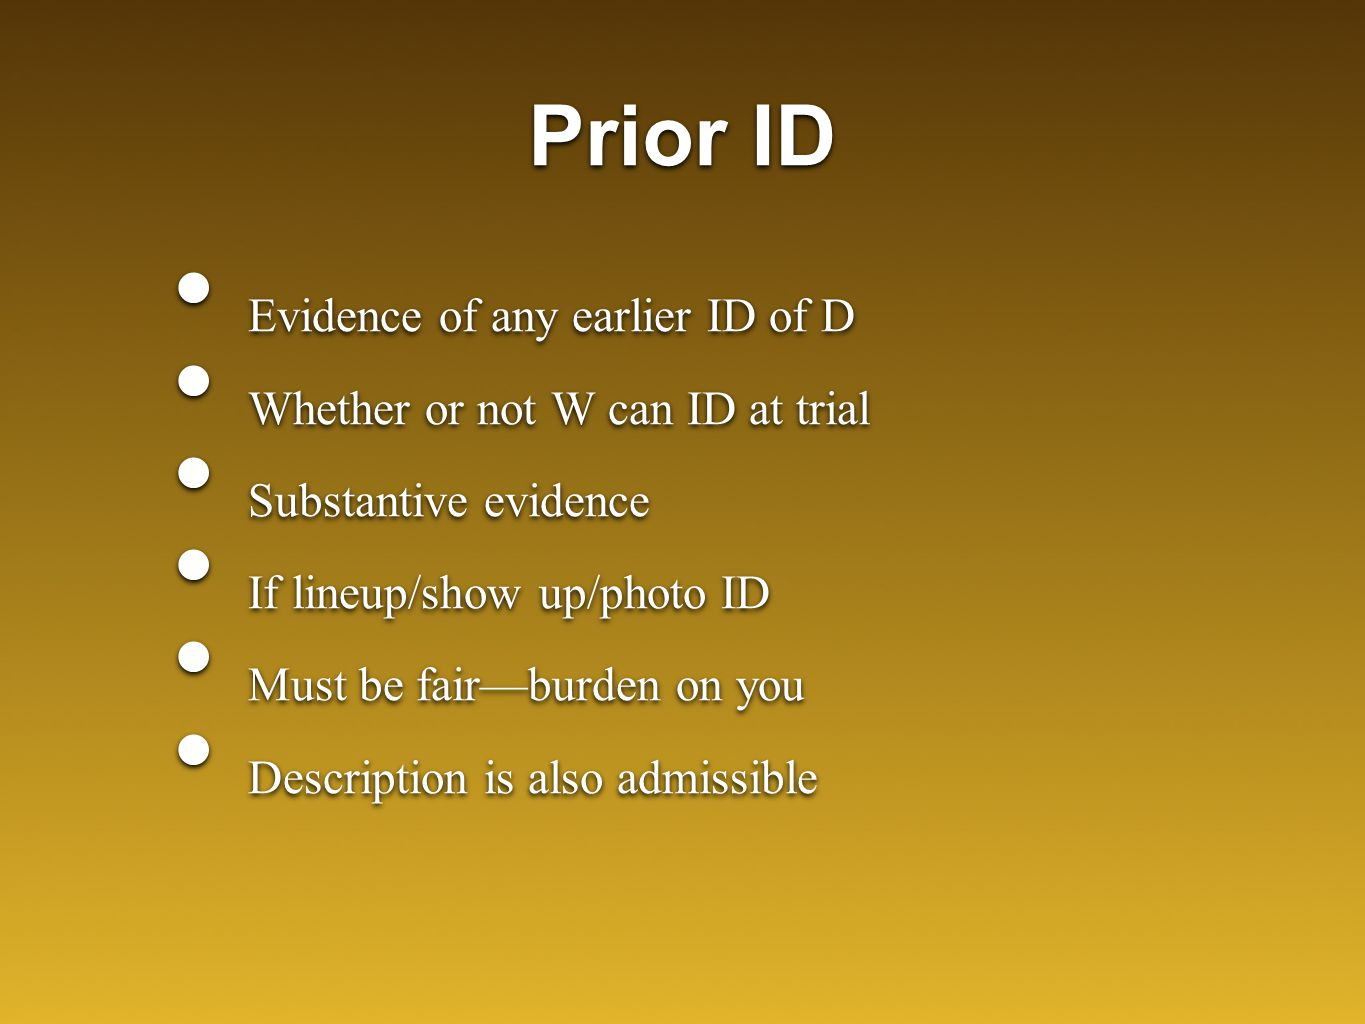 Prior ID Evidence of any earlier ID of D Whether or not W can ID at trial Substantive evidence If lineup/show up/photo ID Must be fair—burden on you Description is also admissible Evidence of any earlier ID of D Whether or not W can ID at trial Substantive evidence If lineup/show up/photo ID Must be fair—burden on you Description is also admissible